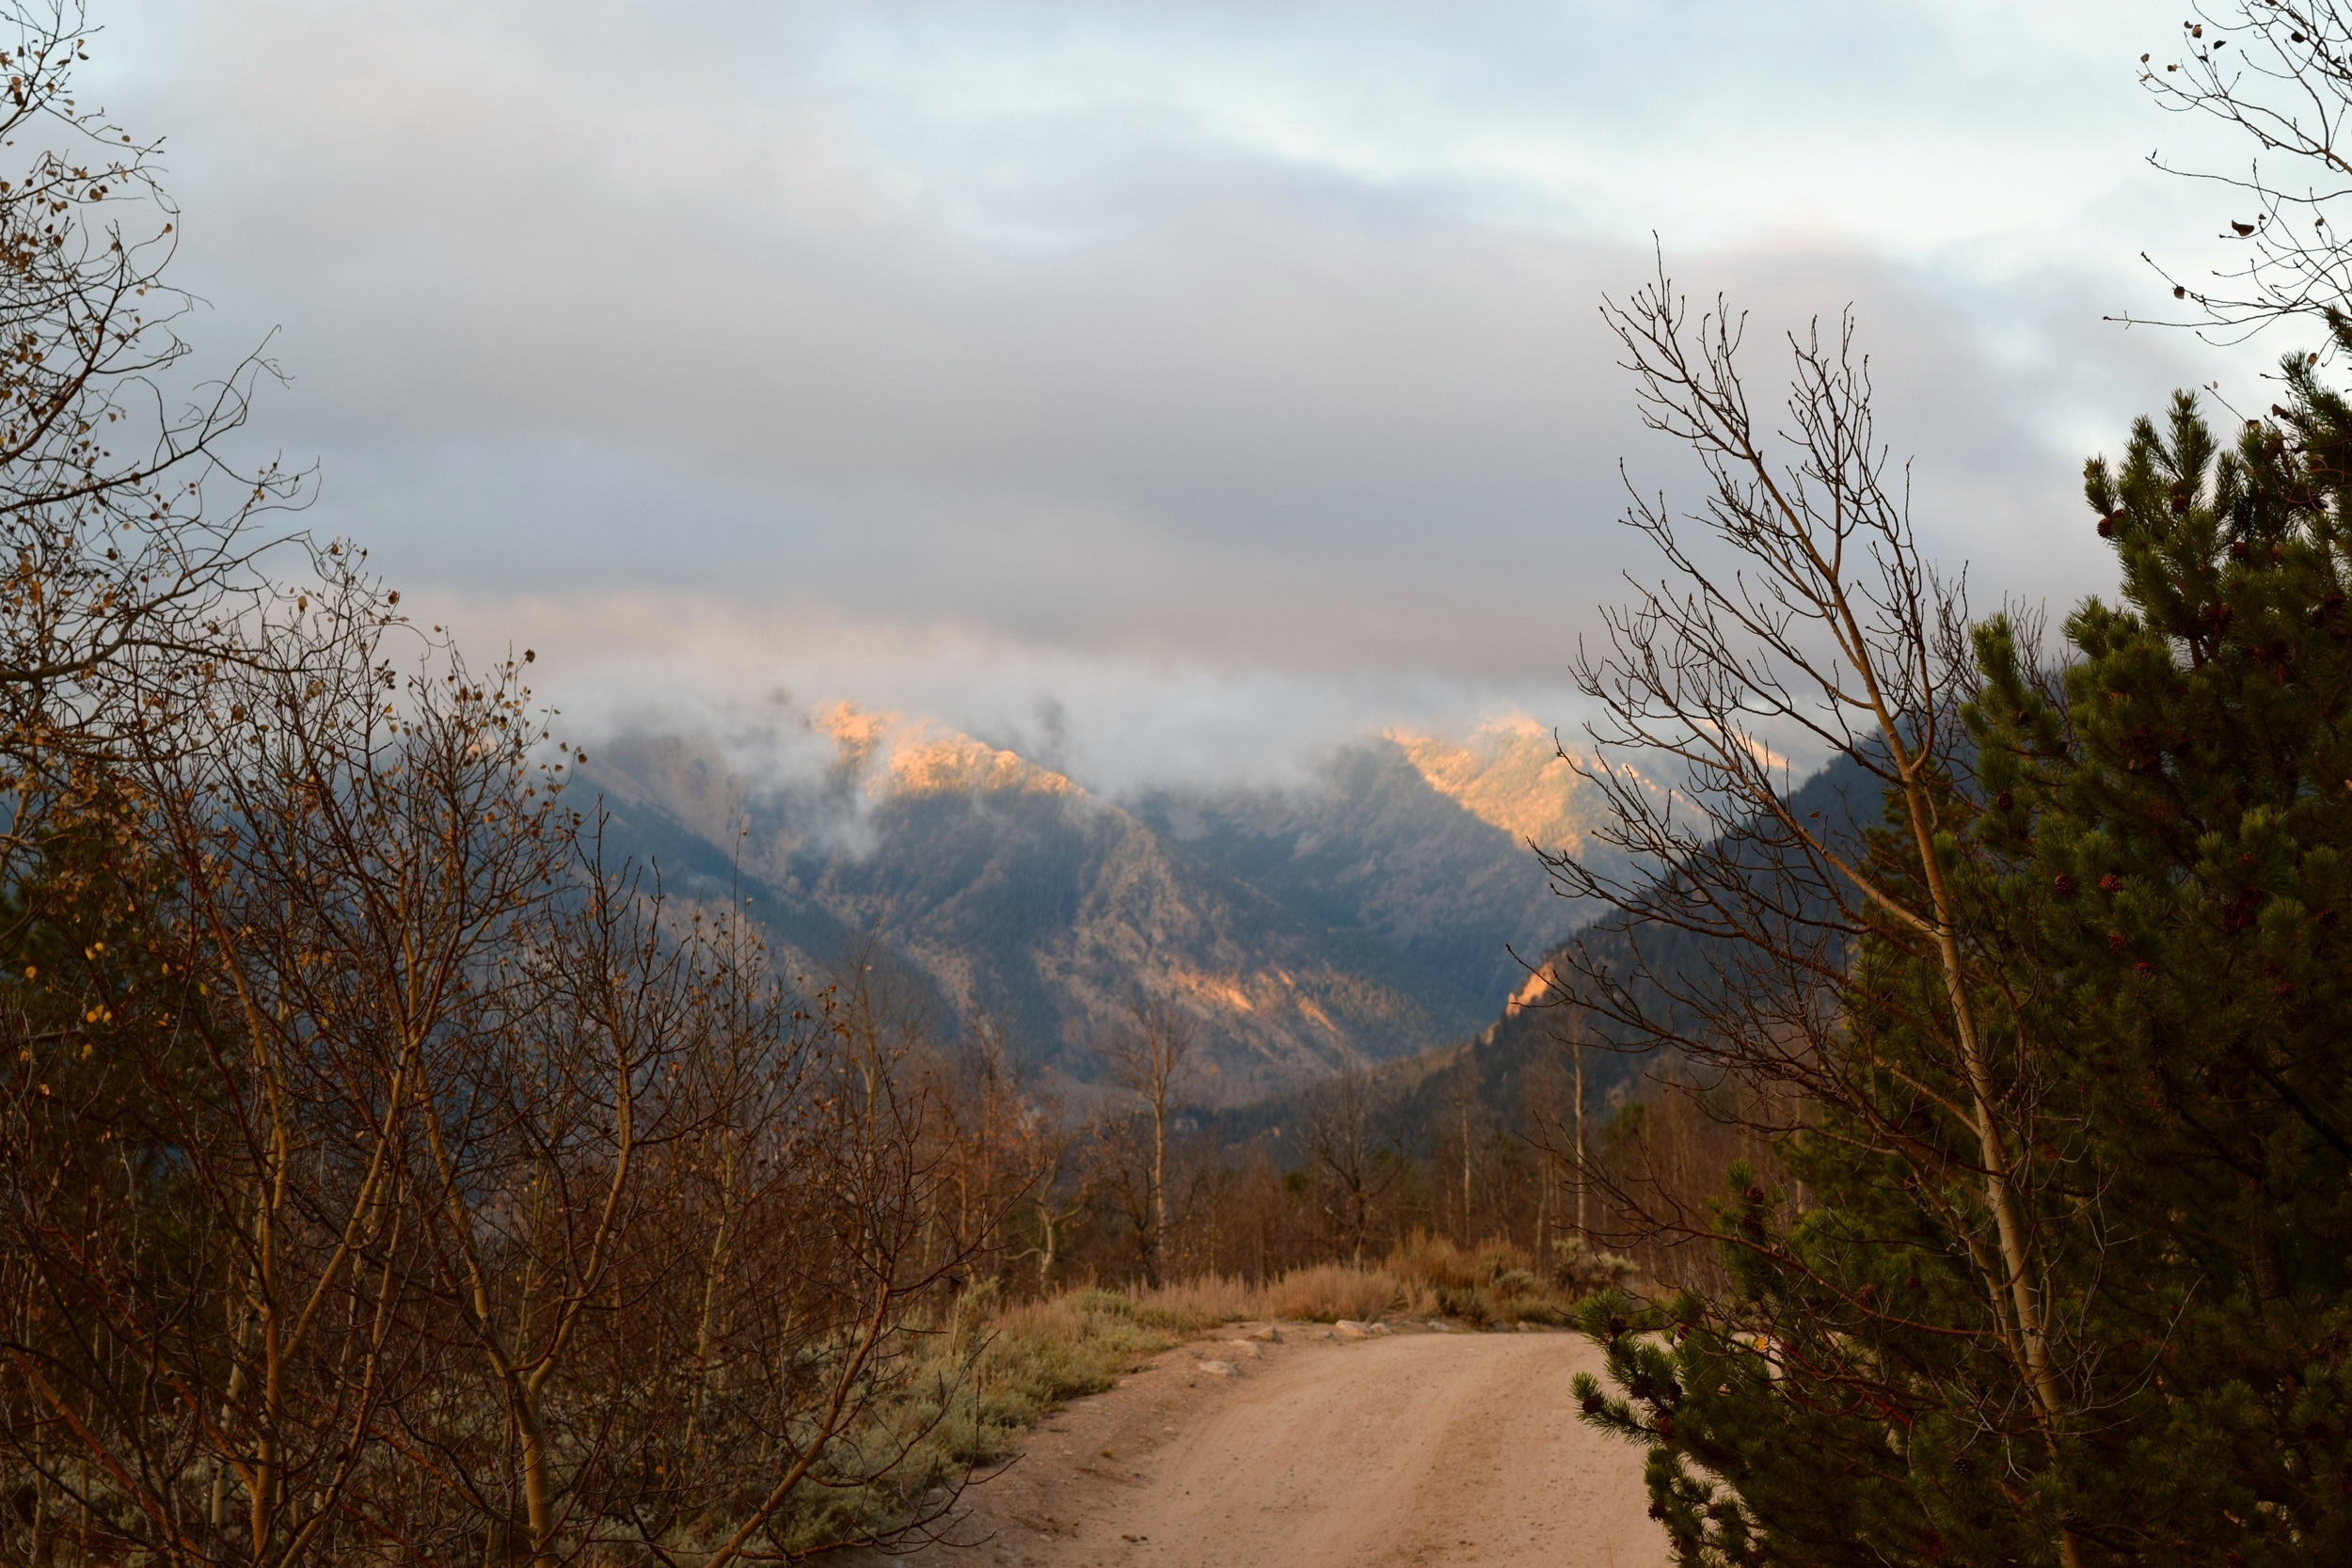 Sunrise off the mountains. This road leads to the Upper Trailhead for Mount Elbert - only 4WD accessible.